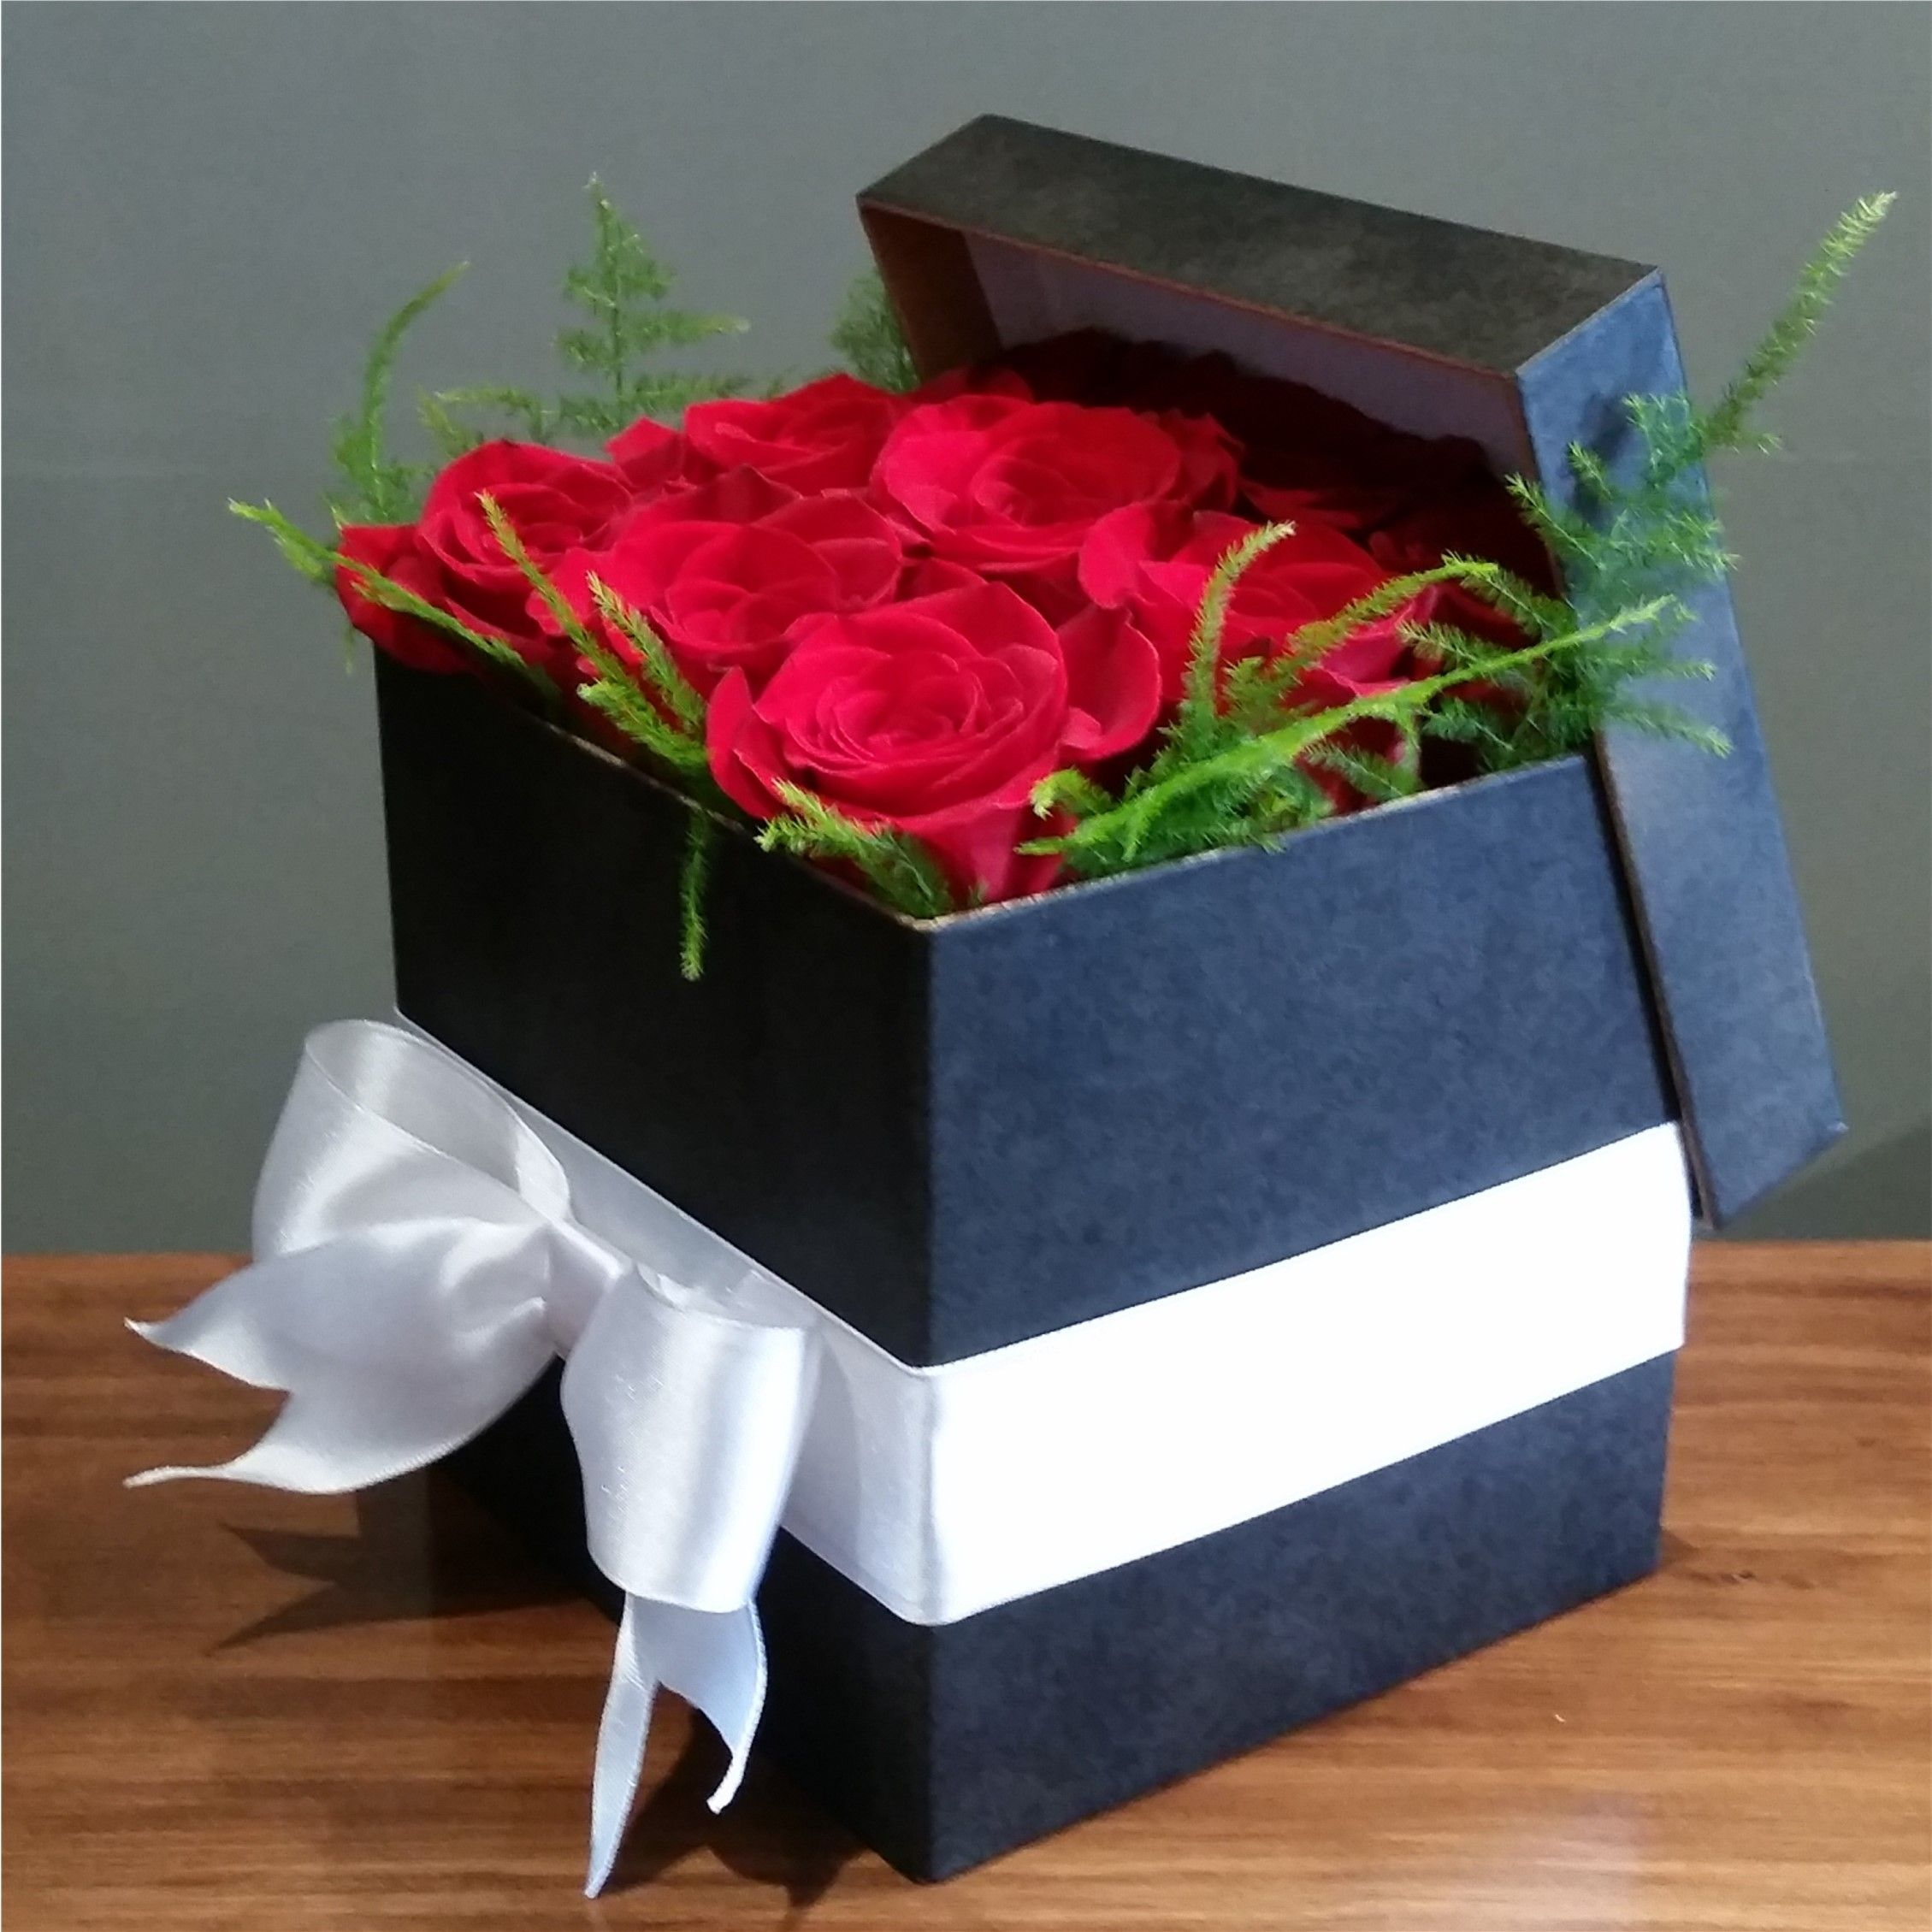 RED TUXEDO black rose box Nyc florist, Same day flower